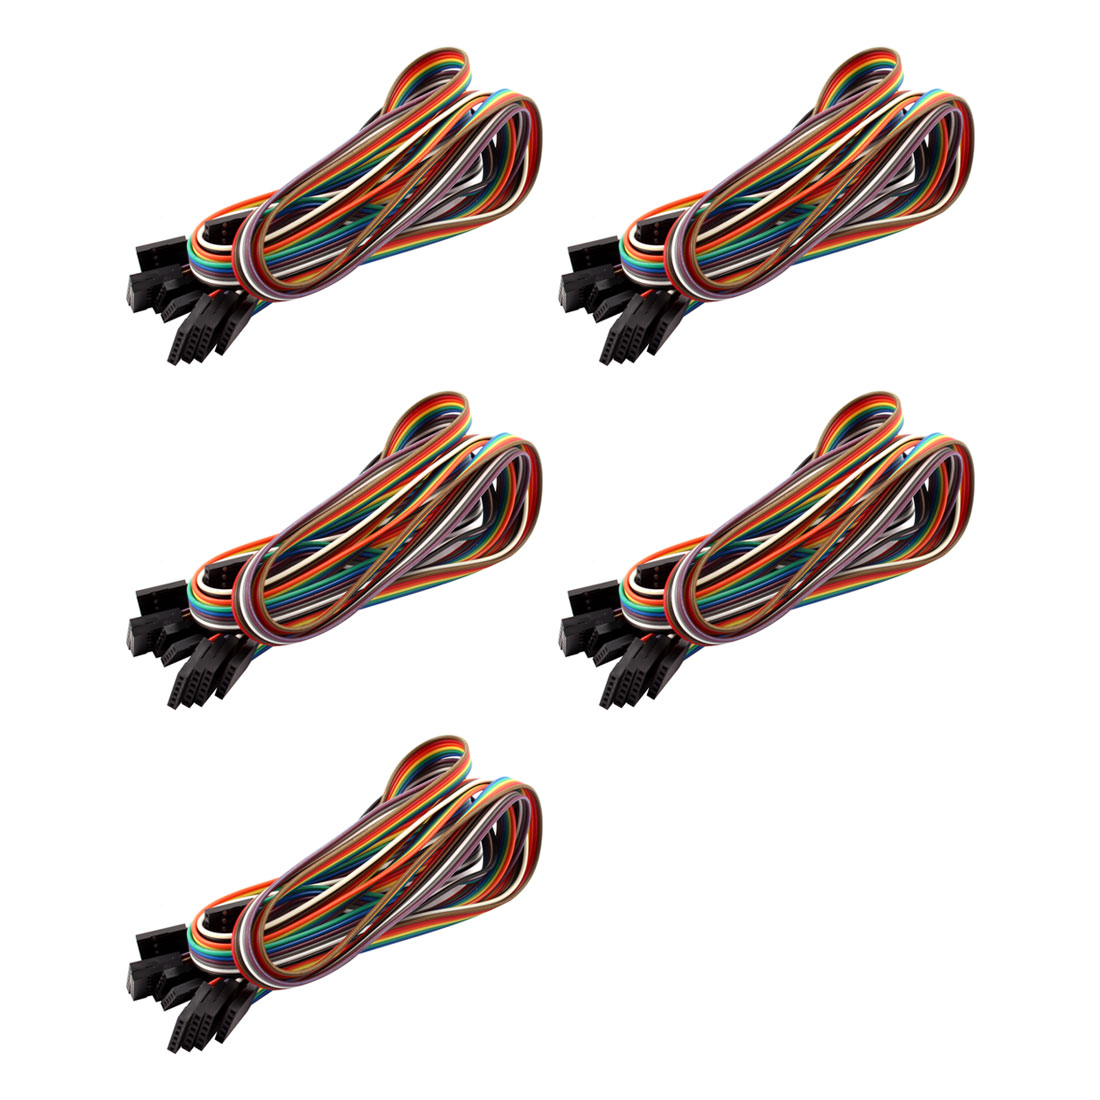 50cm Length 8mm Width 6 Pin Female to Female Jumper Wire Cable Multicolor 5pcs